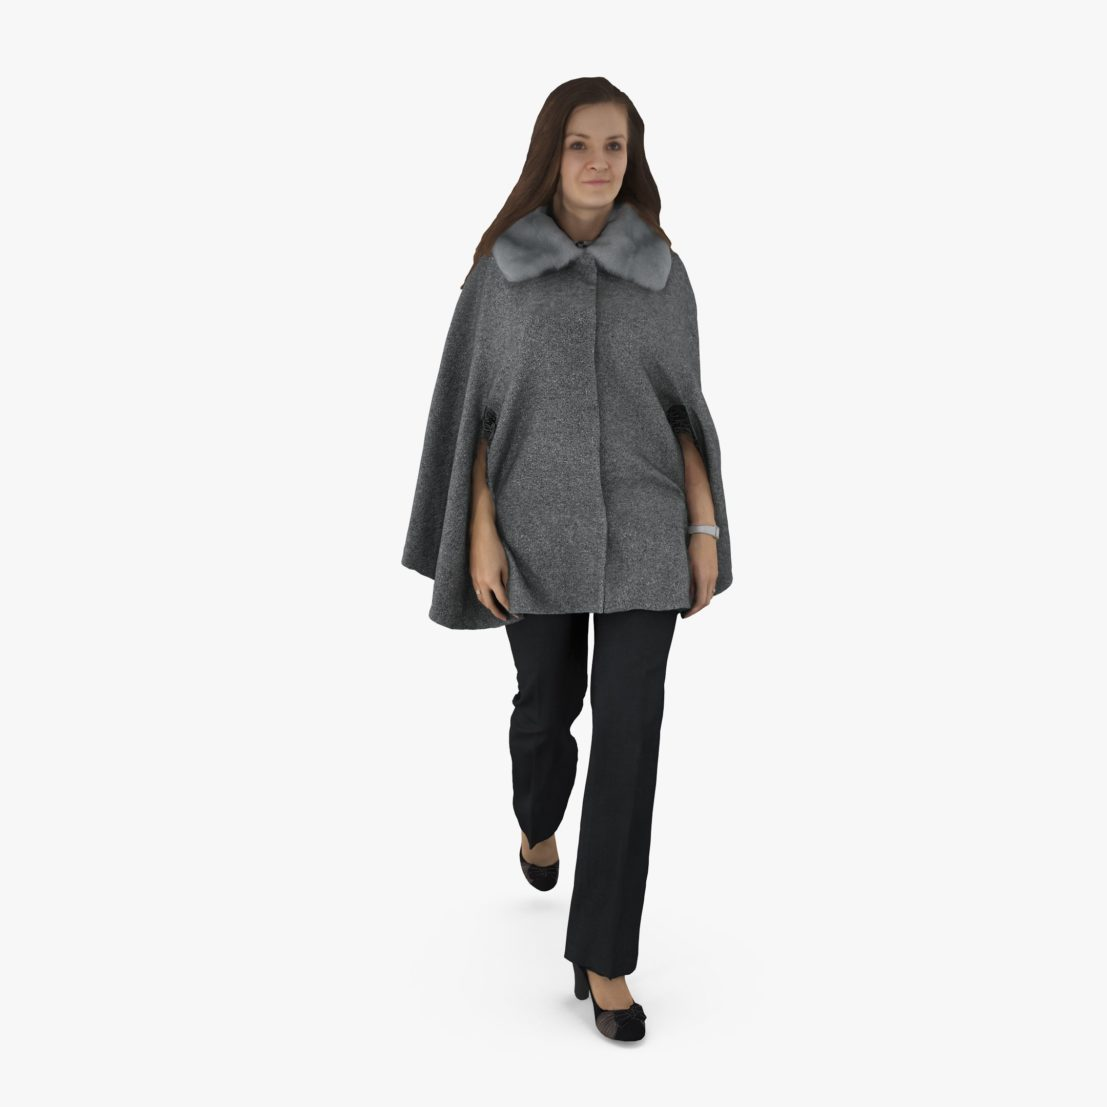 Woman Walking Poncho Dress 3D Model | 3DTree Scanning Studio